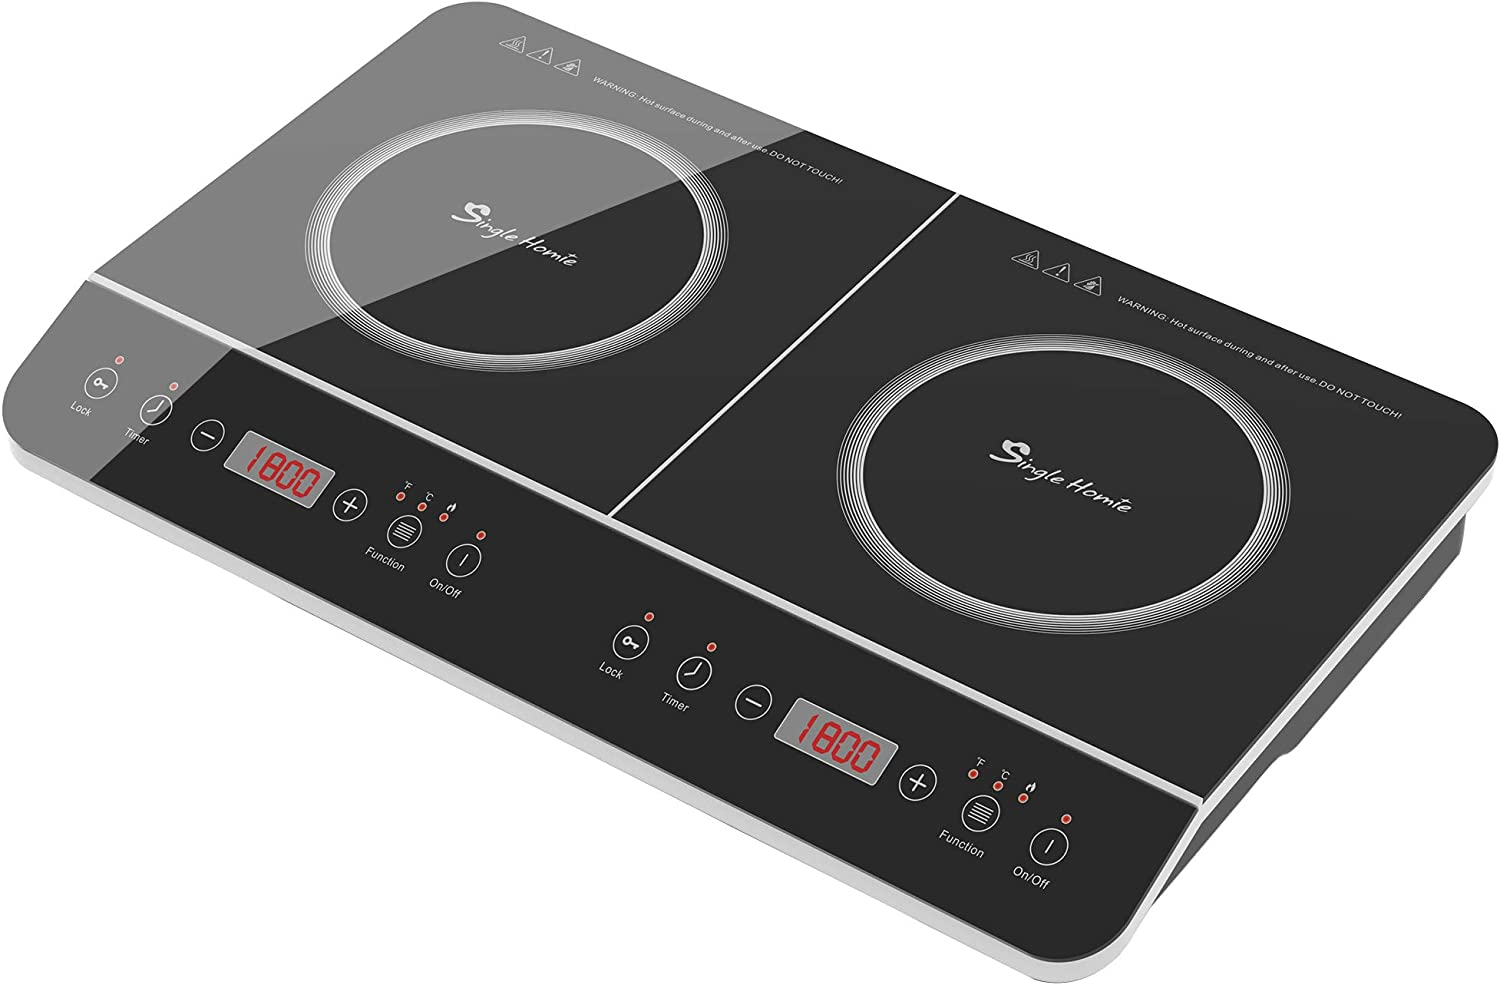 "24"" SINGLEHOMIE Portable Induction Cooktop Cooker Countertop Burner Touch Sensor LED Display Plug-in 110-120V / 1800W"